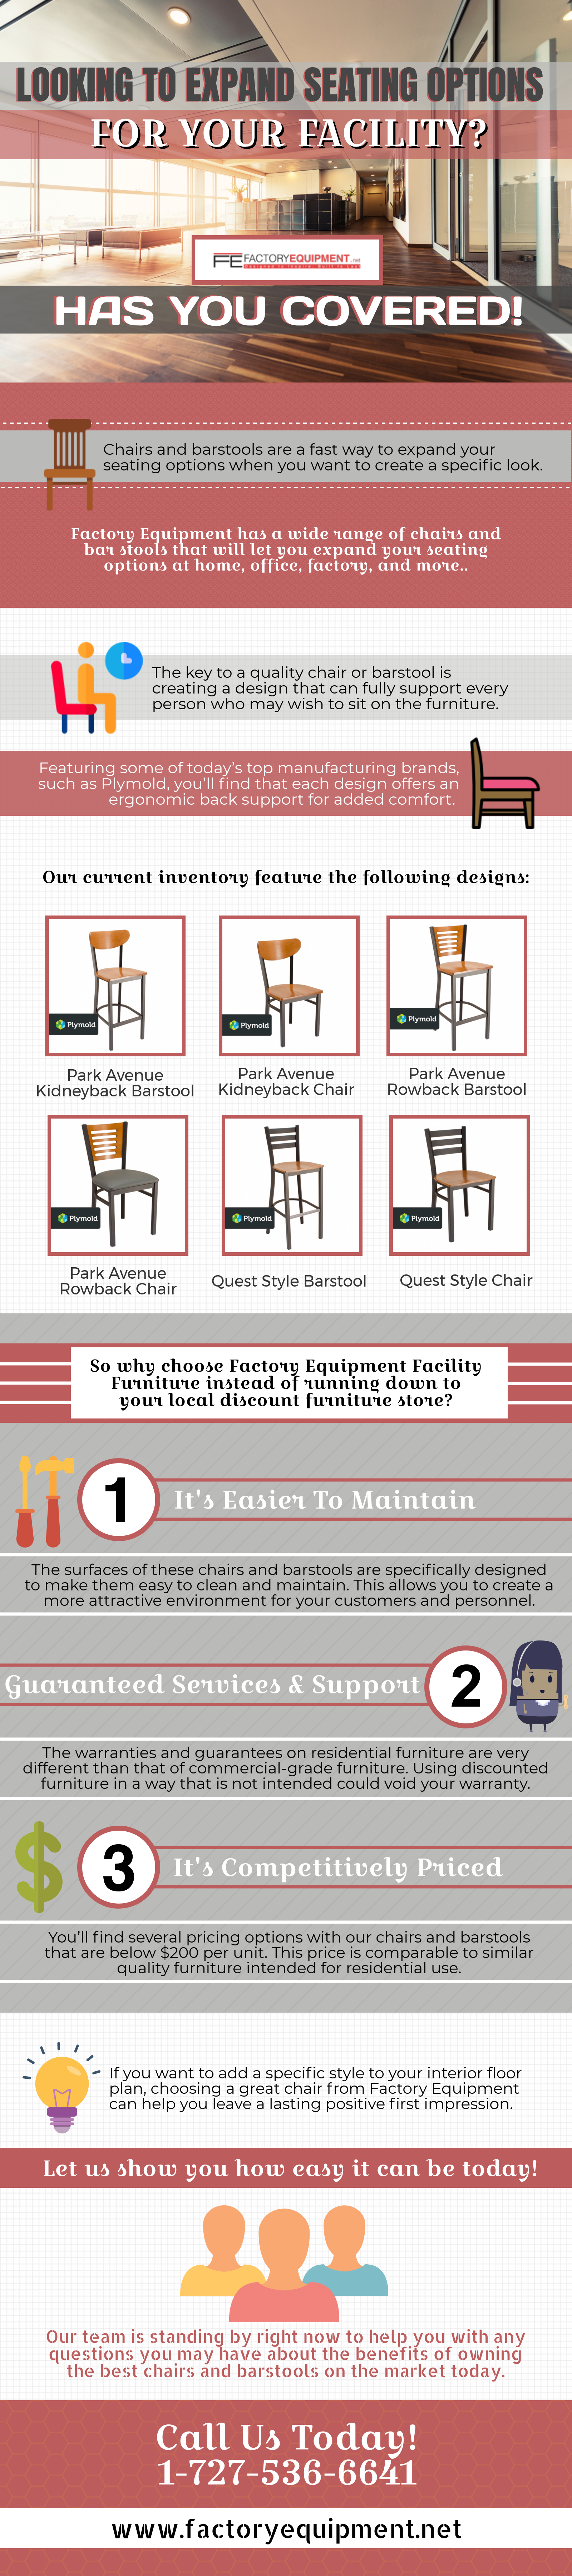 Looking To Expand Seating Options? Factory Equipment Has You Covered